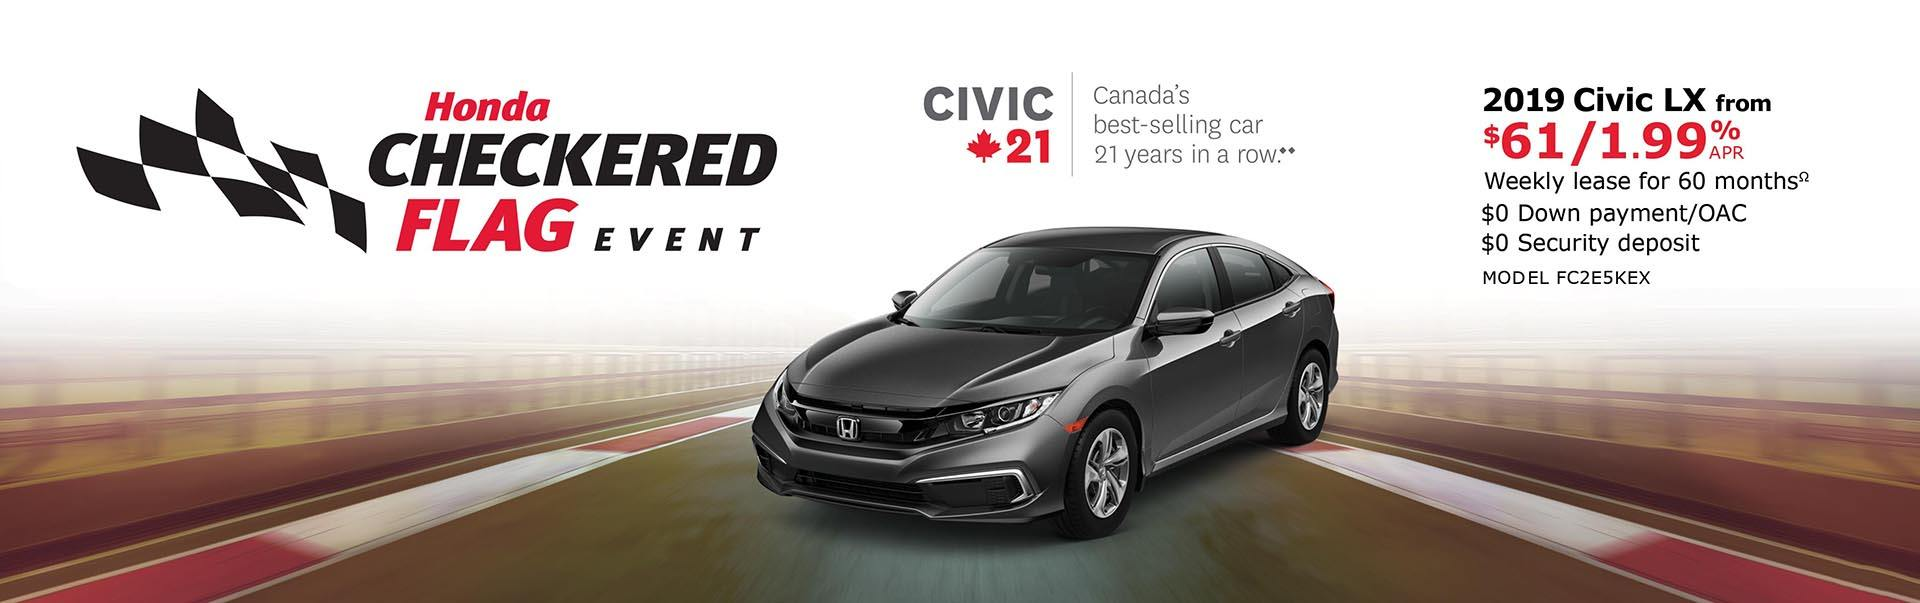 2019 Civic LX from $61 Weekly